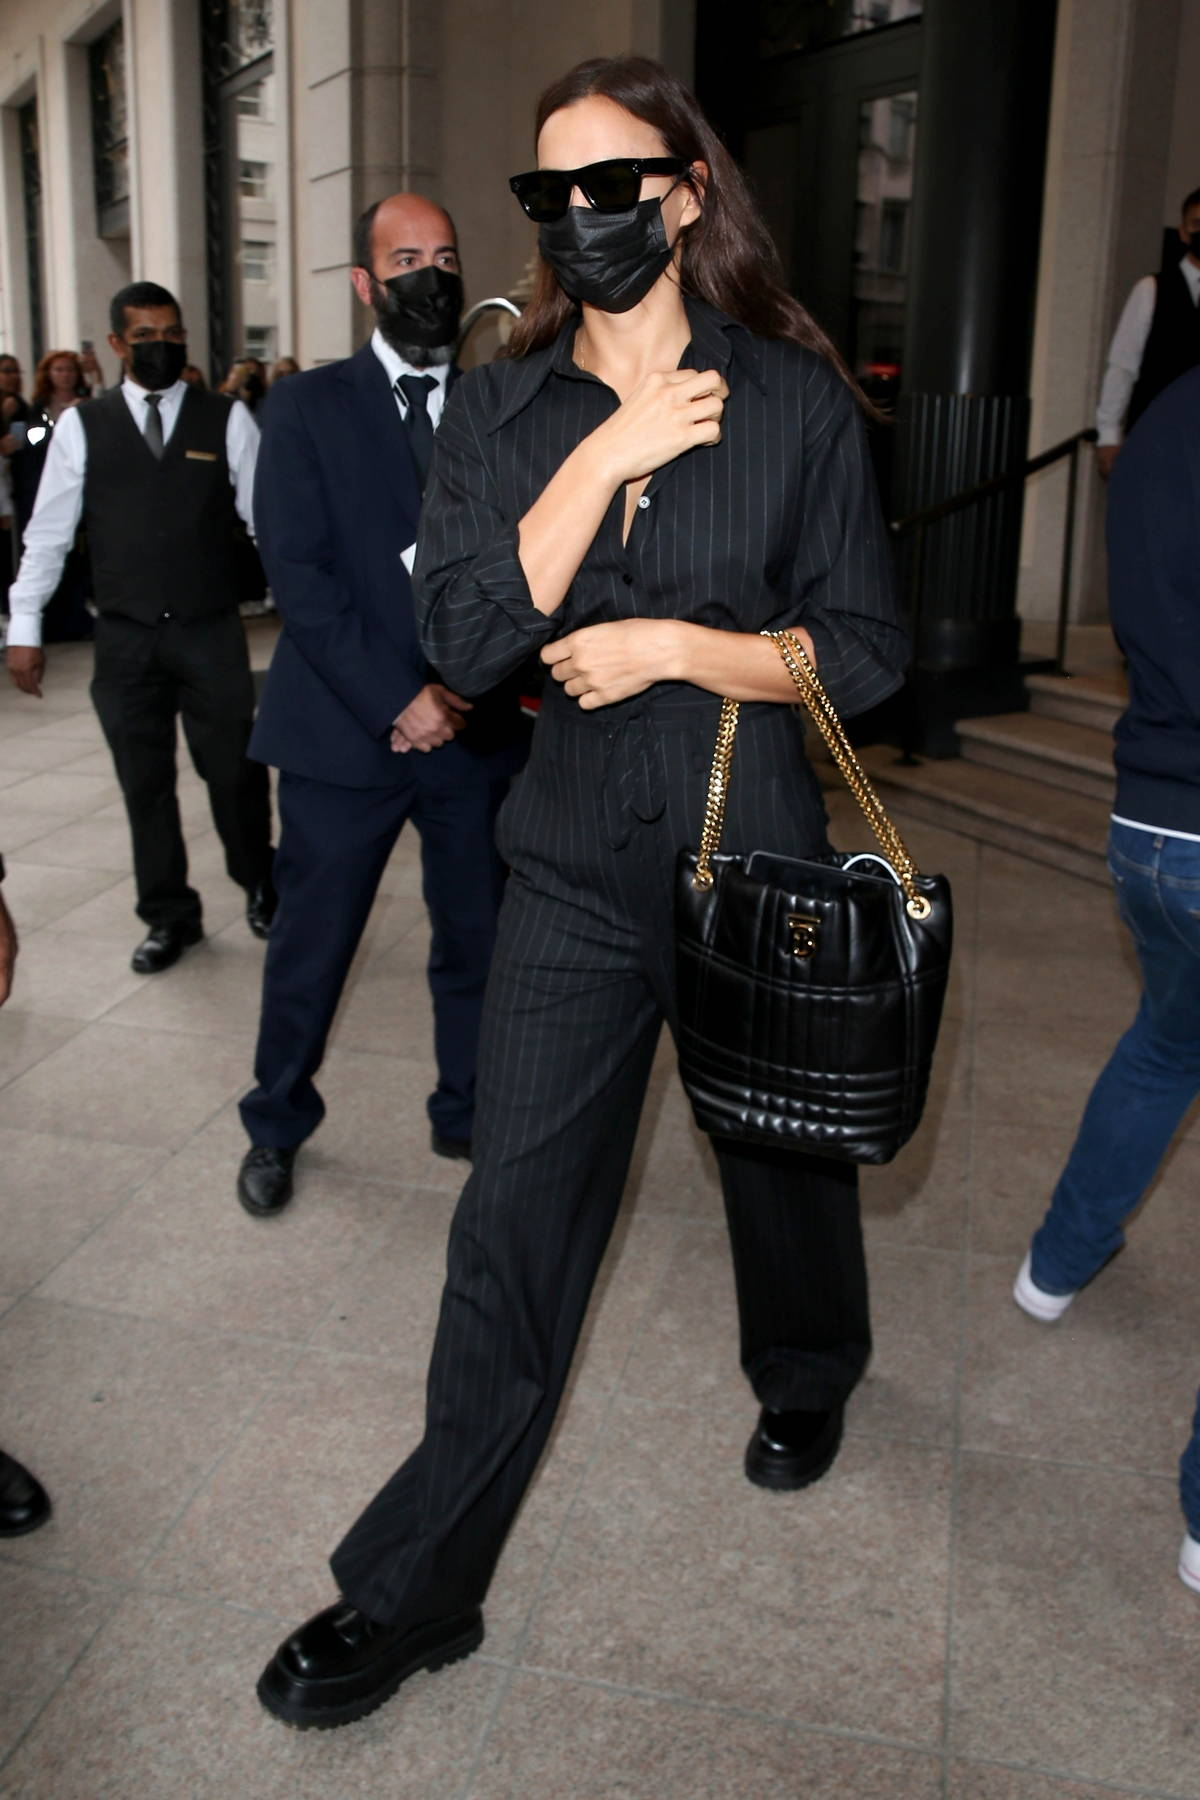 Irina Shayk seen wearing pinstriped dress pants and a matching shirt as she leaves her hotel in Milan, Italy